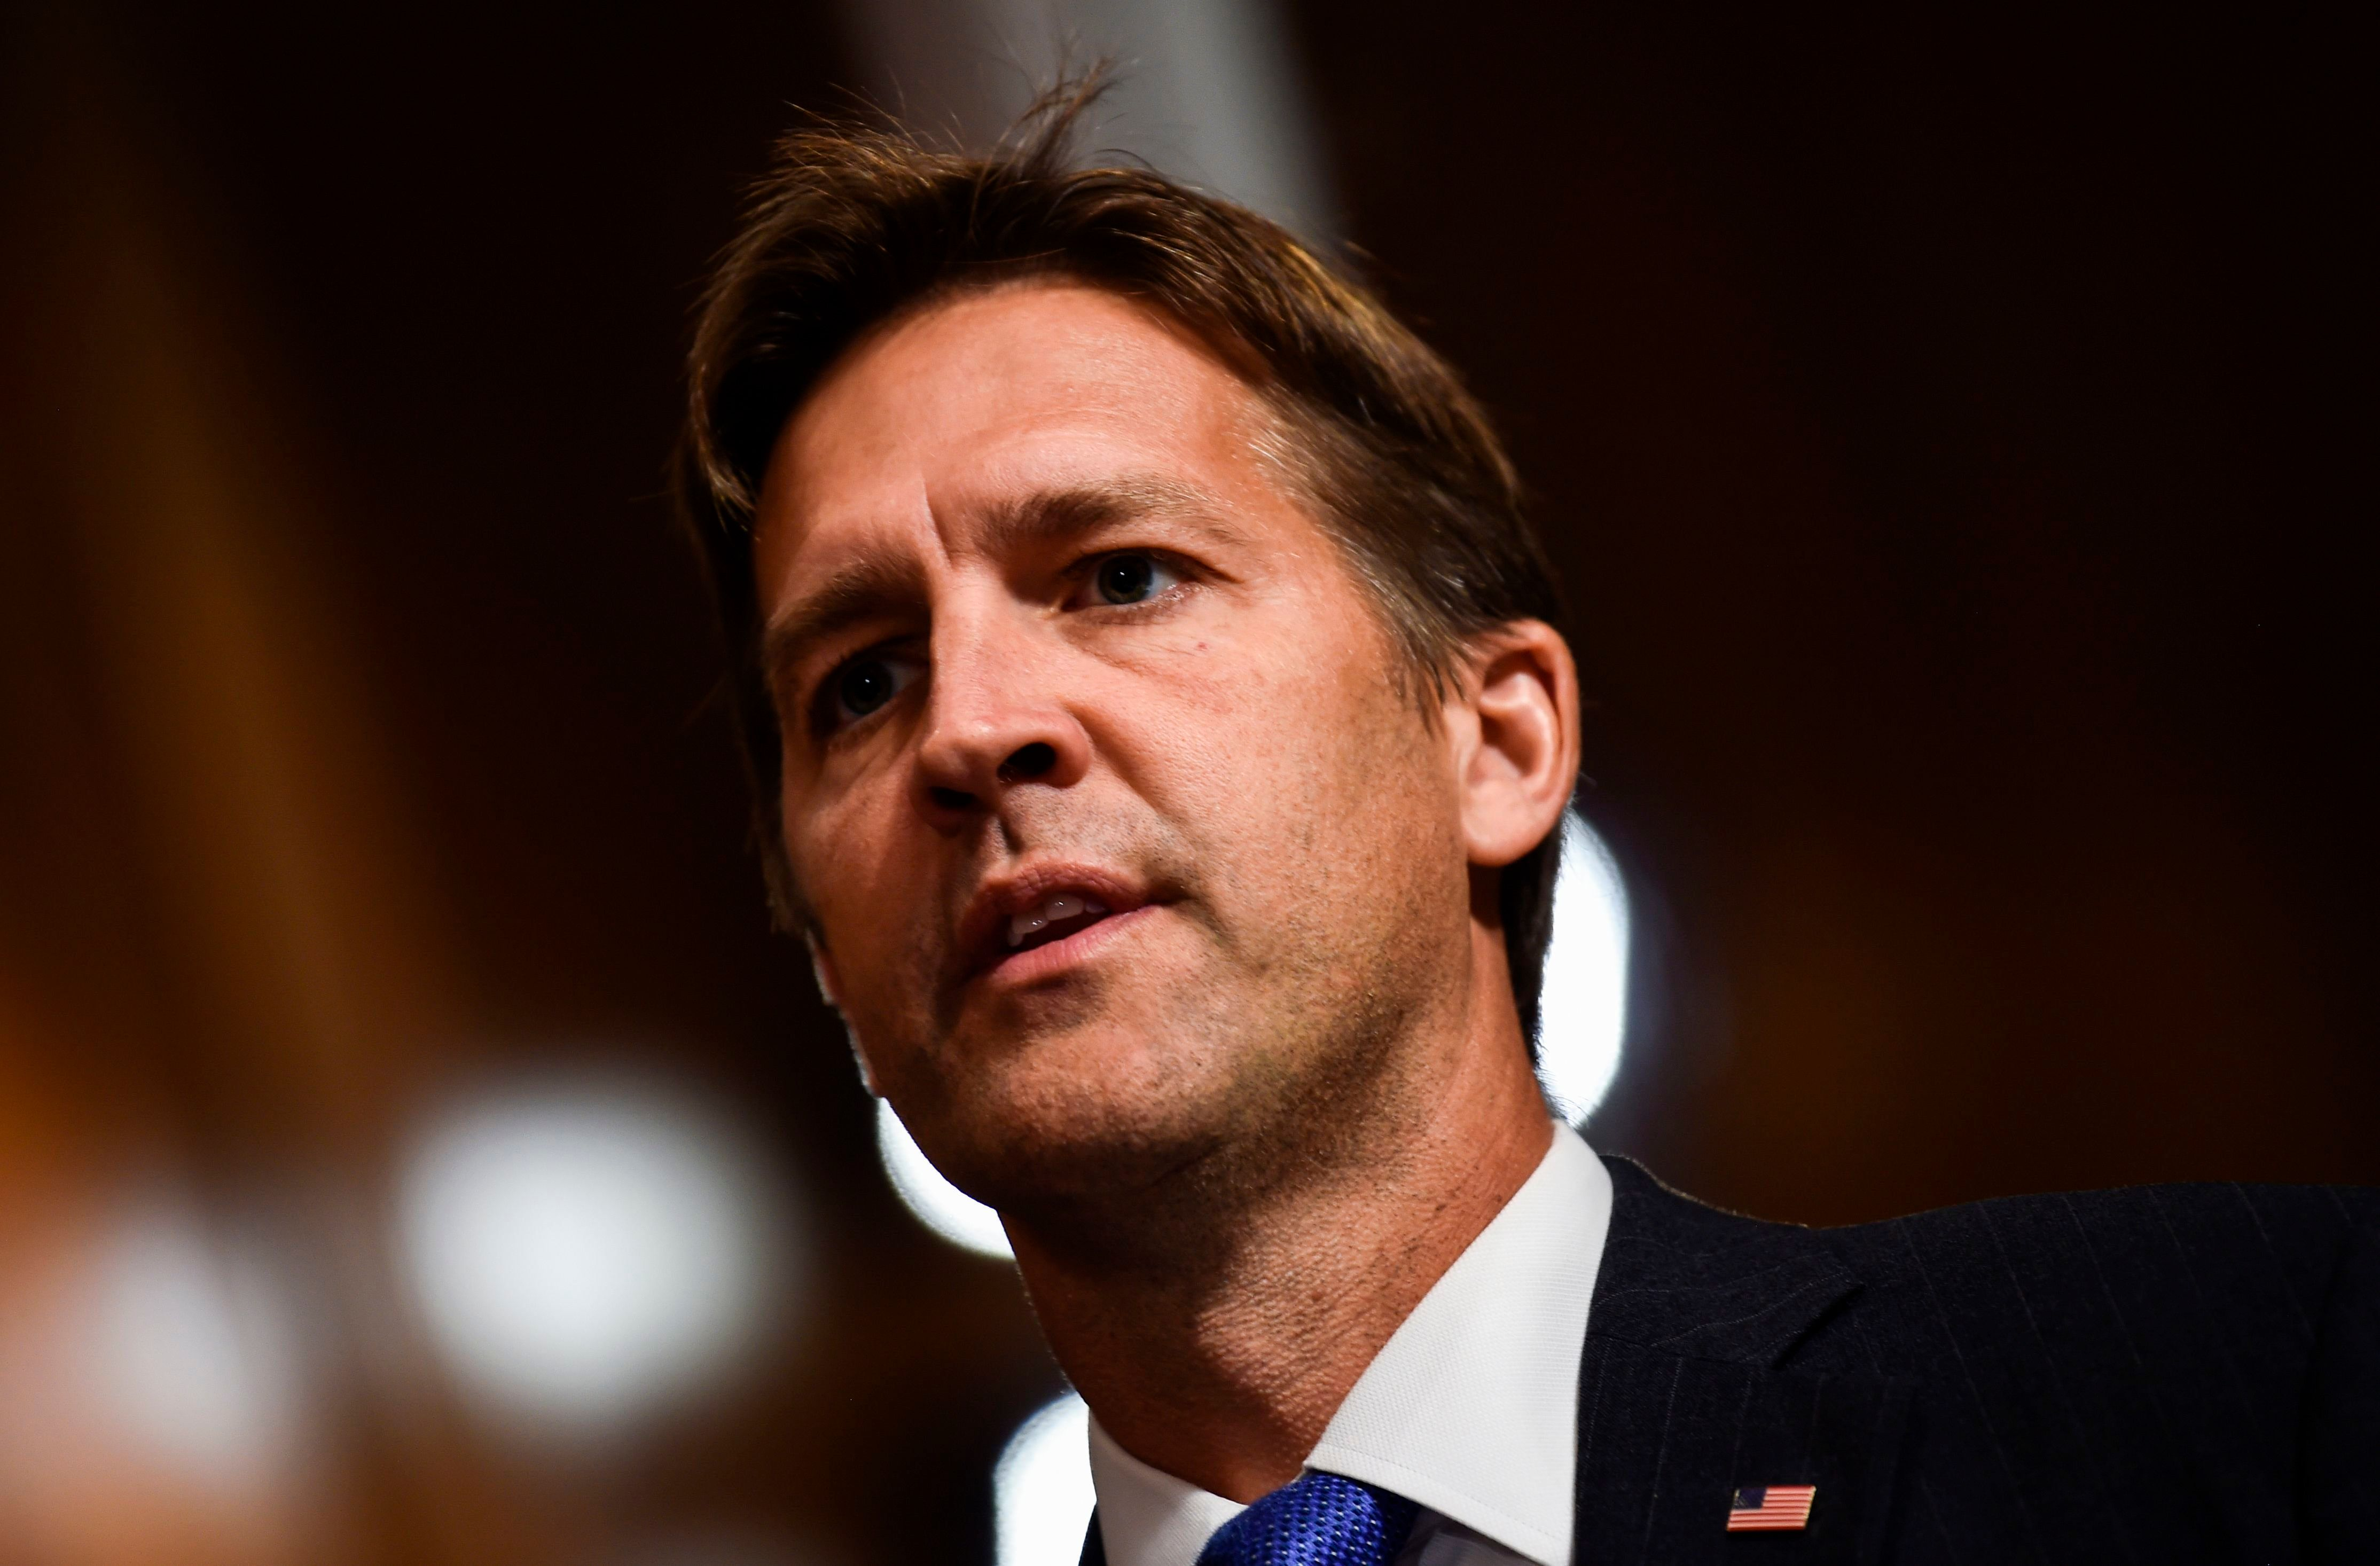 Senate Judiciary Committee member Senator Ben Sasse (R-NE) looks on during a markup hearing on Capitol Hill in Washington, DC on September 28, 2018, on the nomination of Brett M. Kavanaugh to be an associate justice of the Supreme Court of the United States. - Kavanaugh's contentious Supreme Court nomination will be put to an initial vote Friday, the day after a dramatic Senate hearing saw the judge furiously fight back against sexual assault allegations recounted in harrowing detail by his accuser. (Photo by Brendan SMIALOWSKI / AFP)        (Photo credit should read BRENDAN SMIALOWSKI/AFP/Getty Images)